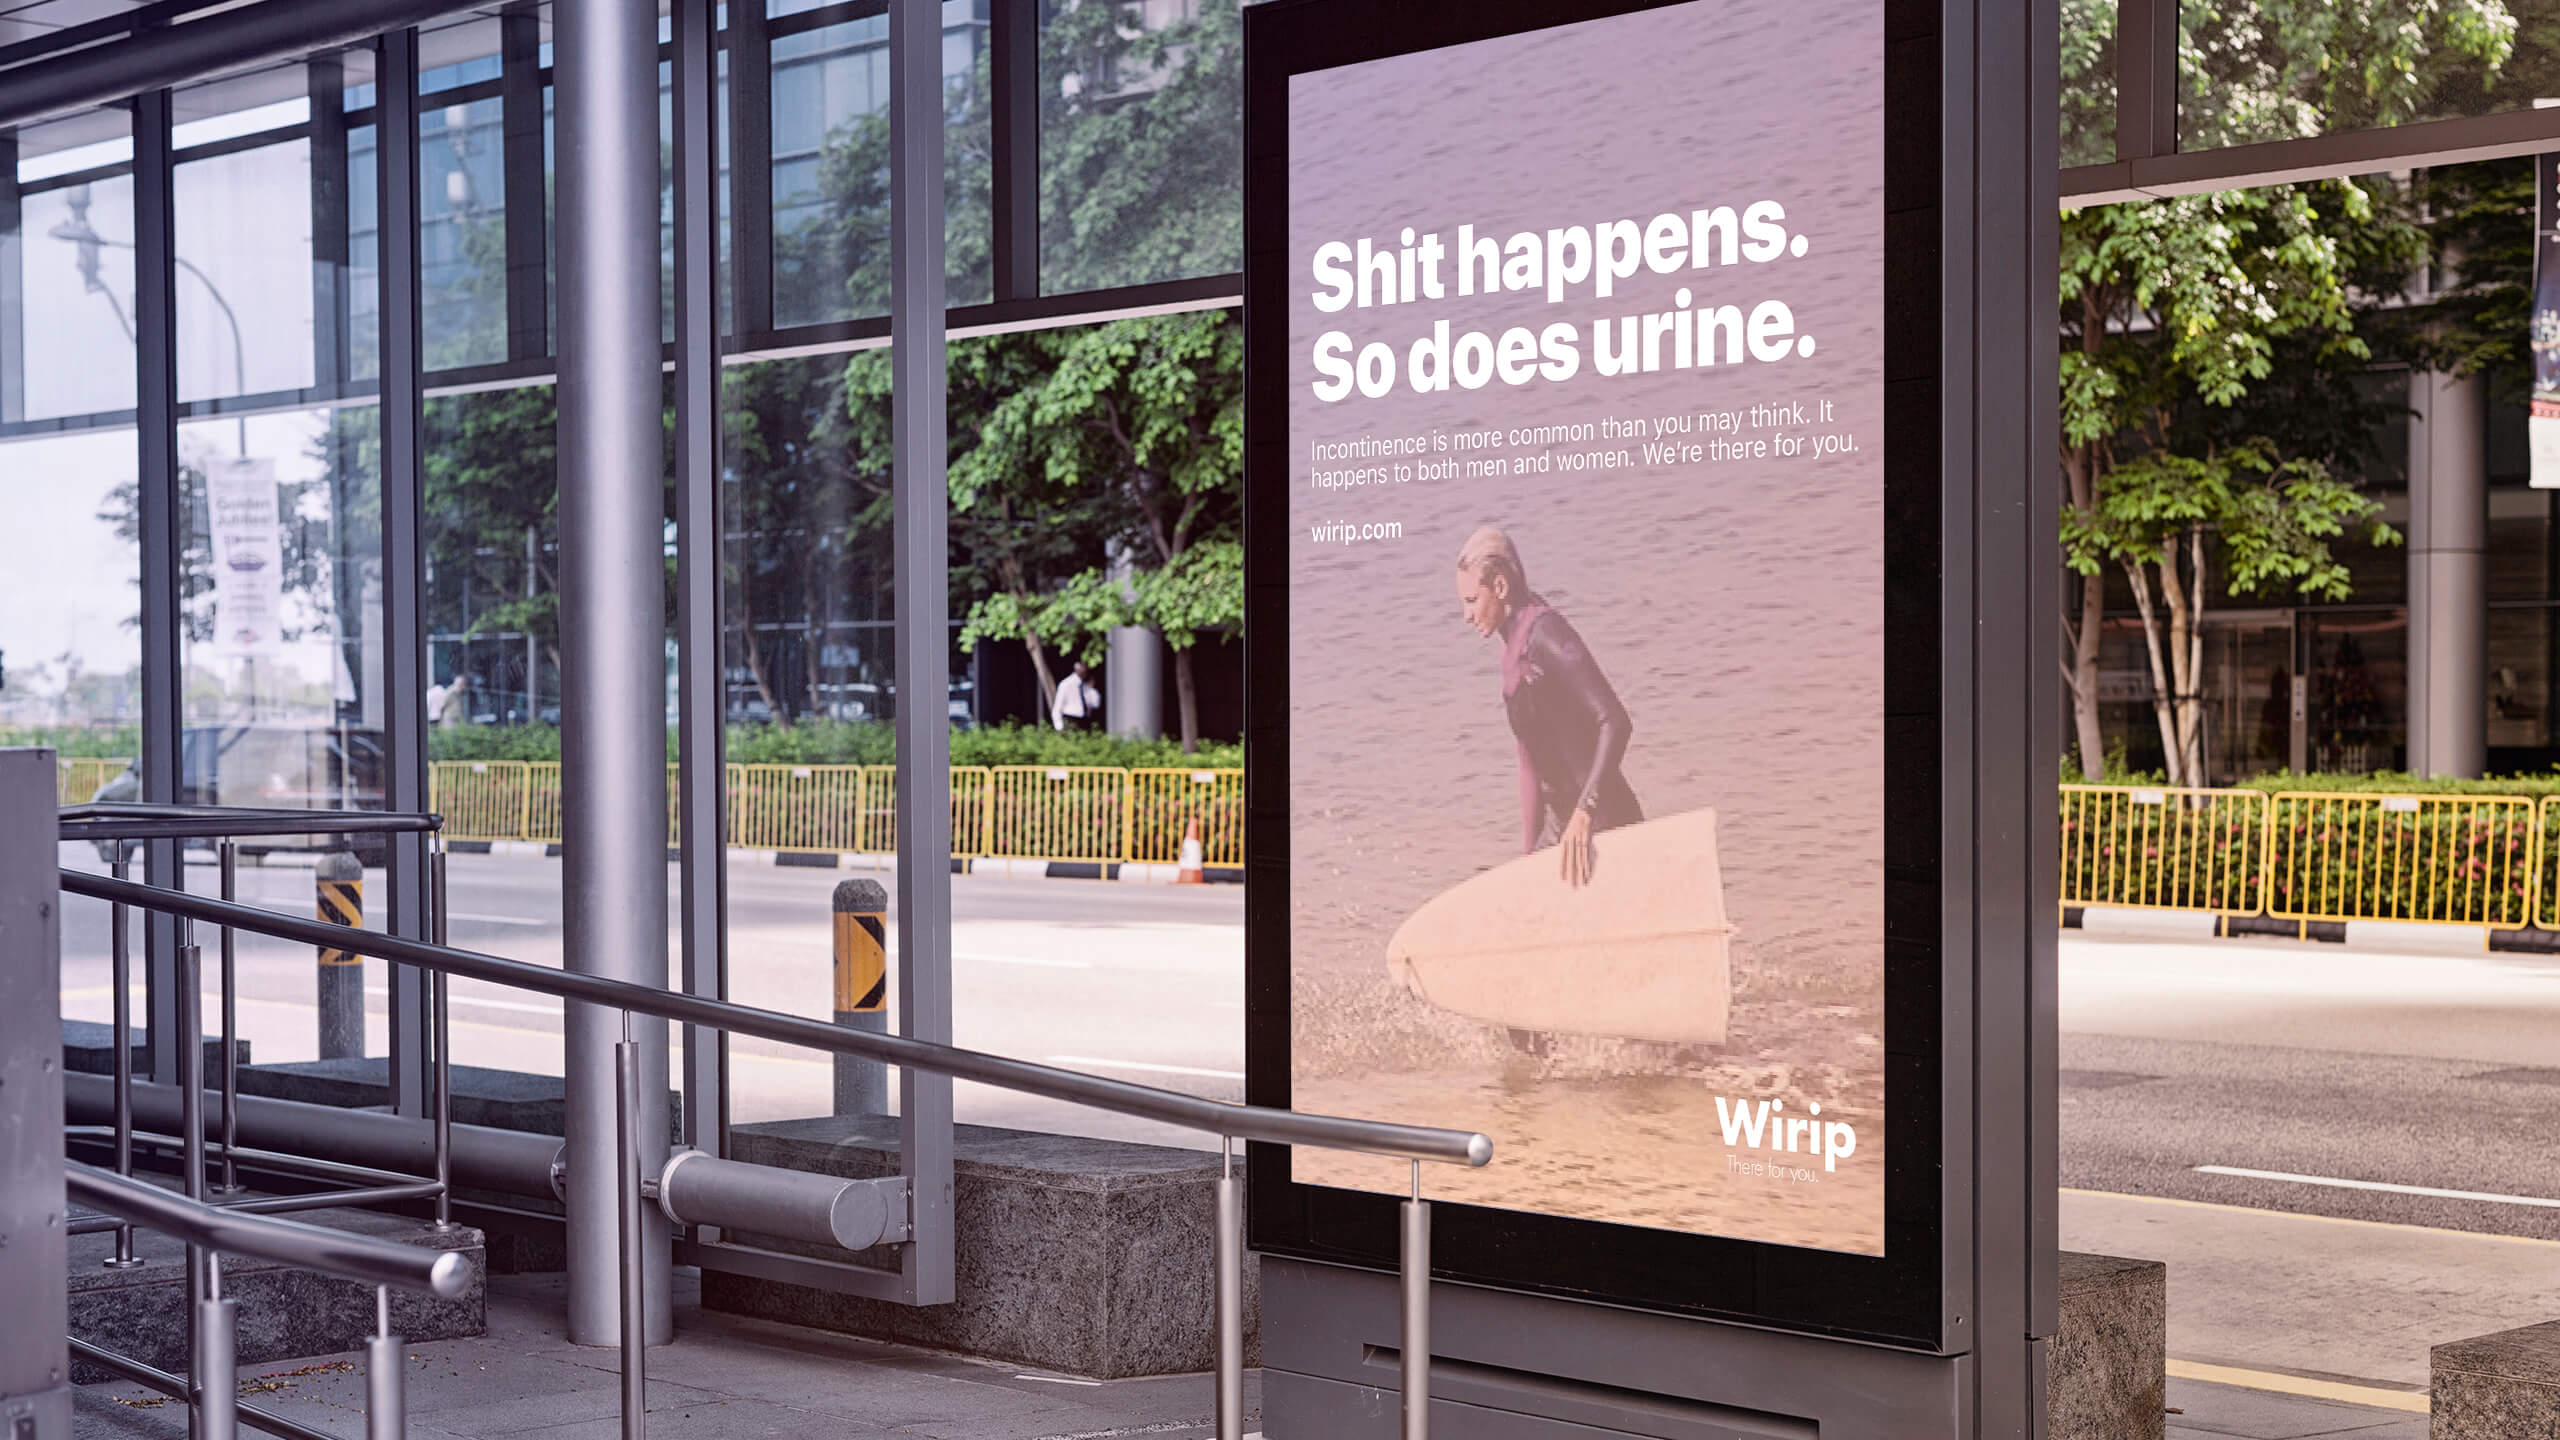 Wirip - We're there for you. Shit happens campaign.